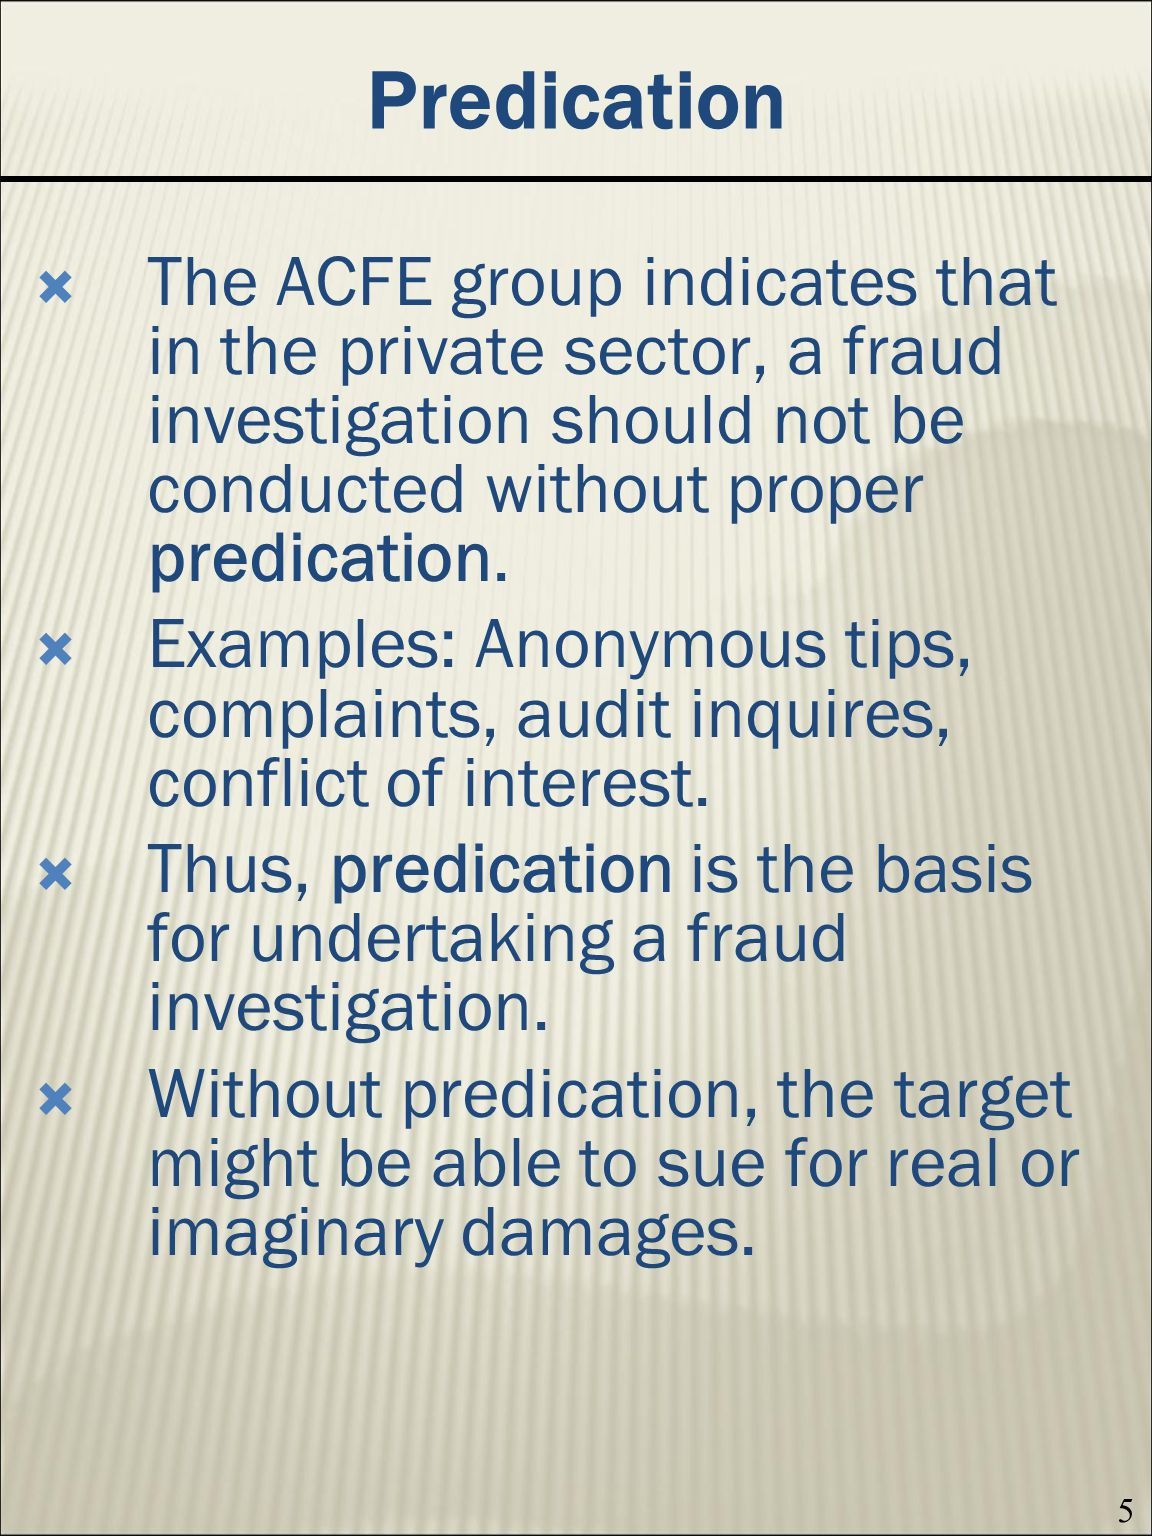 Predication The ACFE group indicates that in the private sector, a fraud investigation should not be conducted without proper predication.